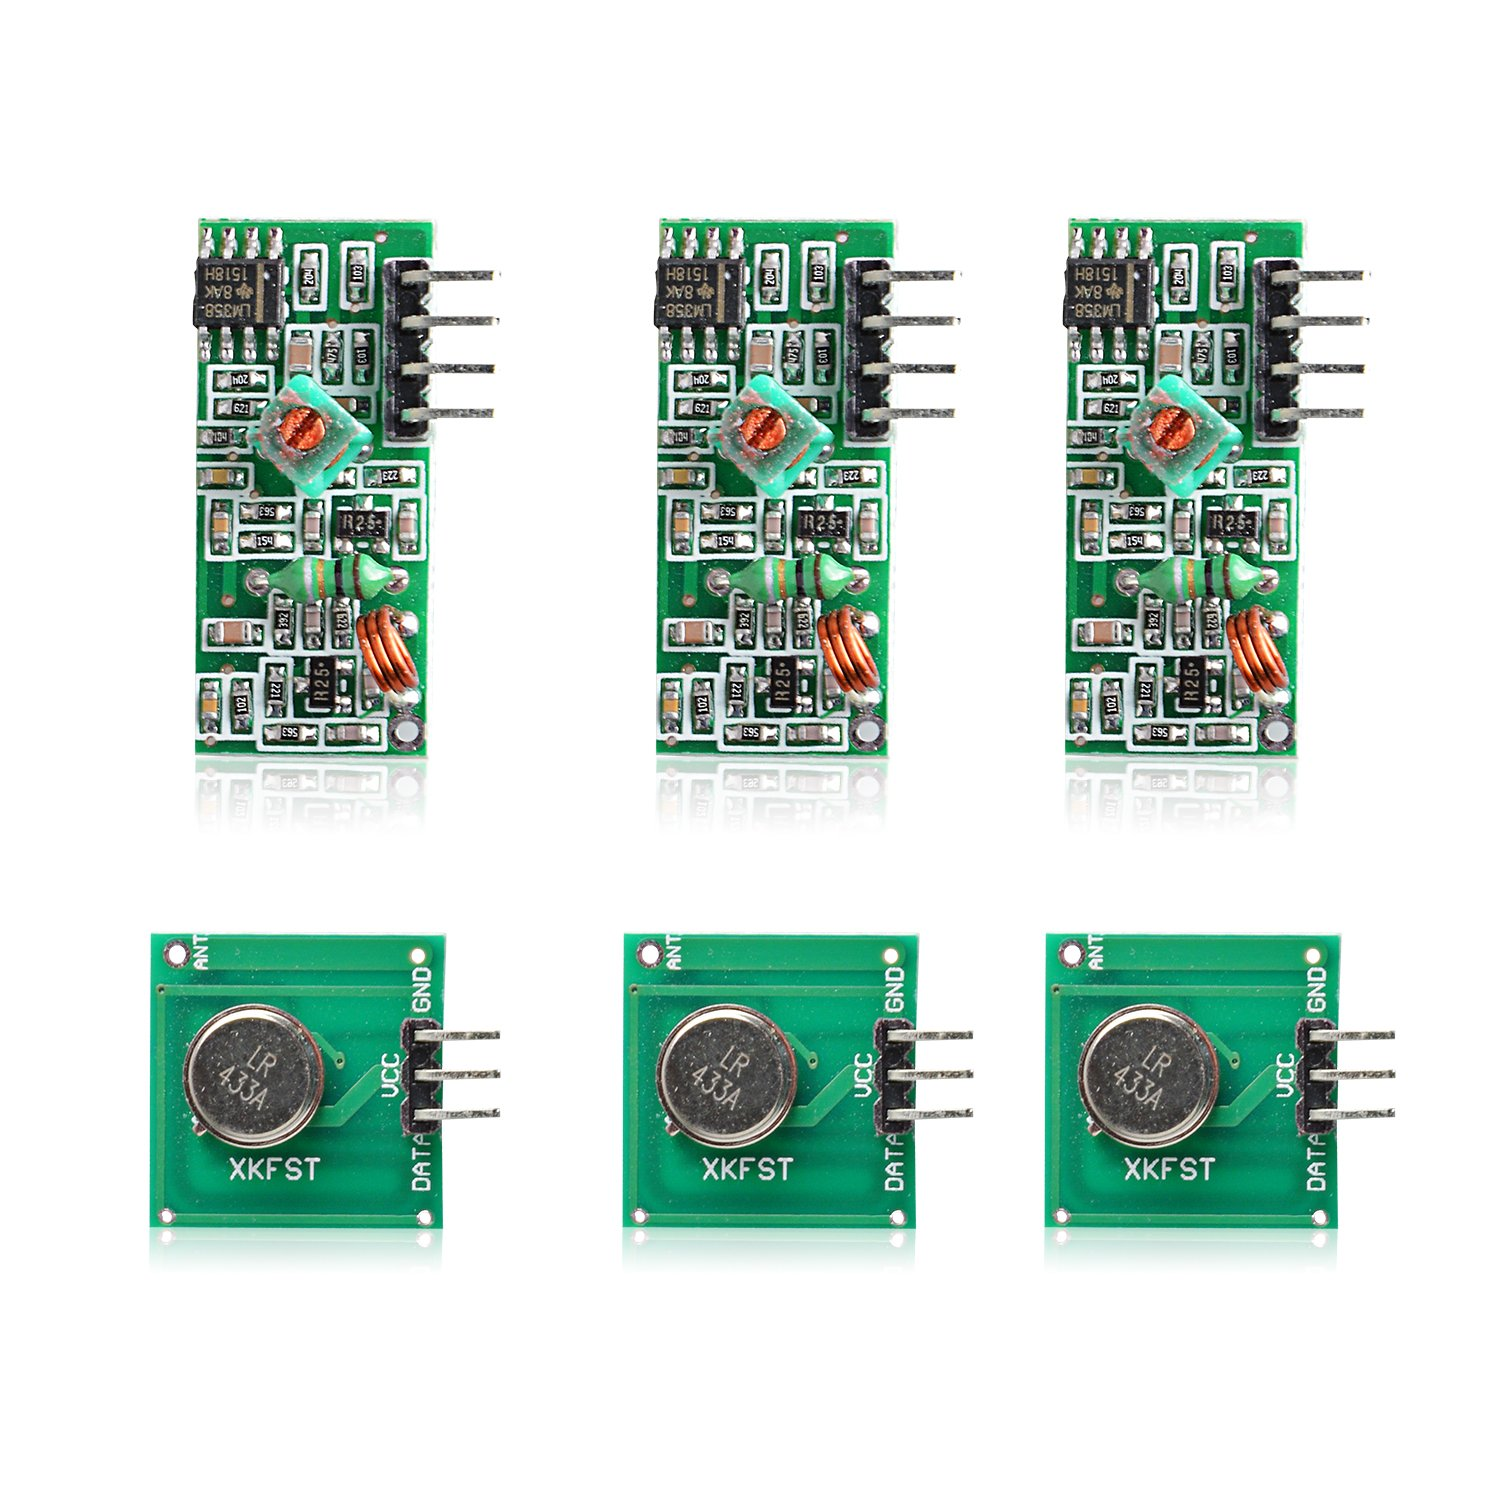 Aukru 3x 433mhz Rf Wireless Transmitter And Receiver Module Kit For Thermometer Circuit With Electronic Arduino Raspberry Pi Computers Accessories